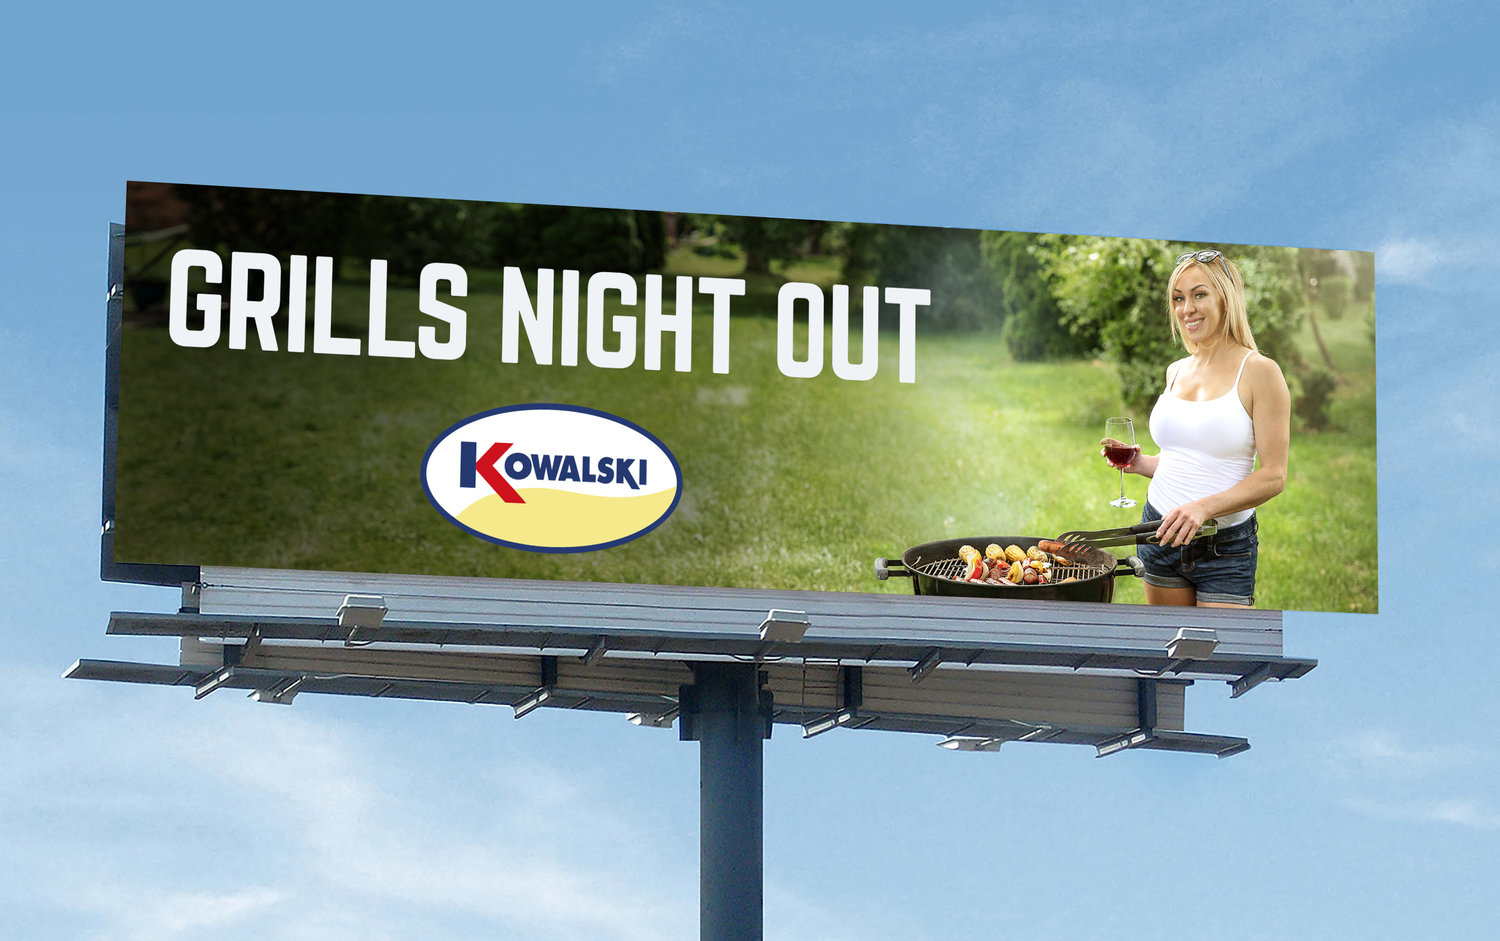 Grills Night Out.jpg